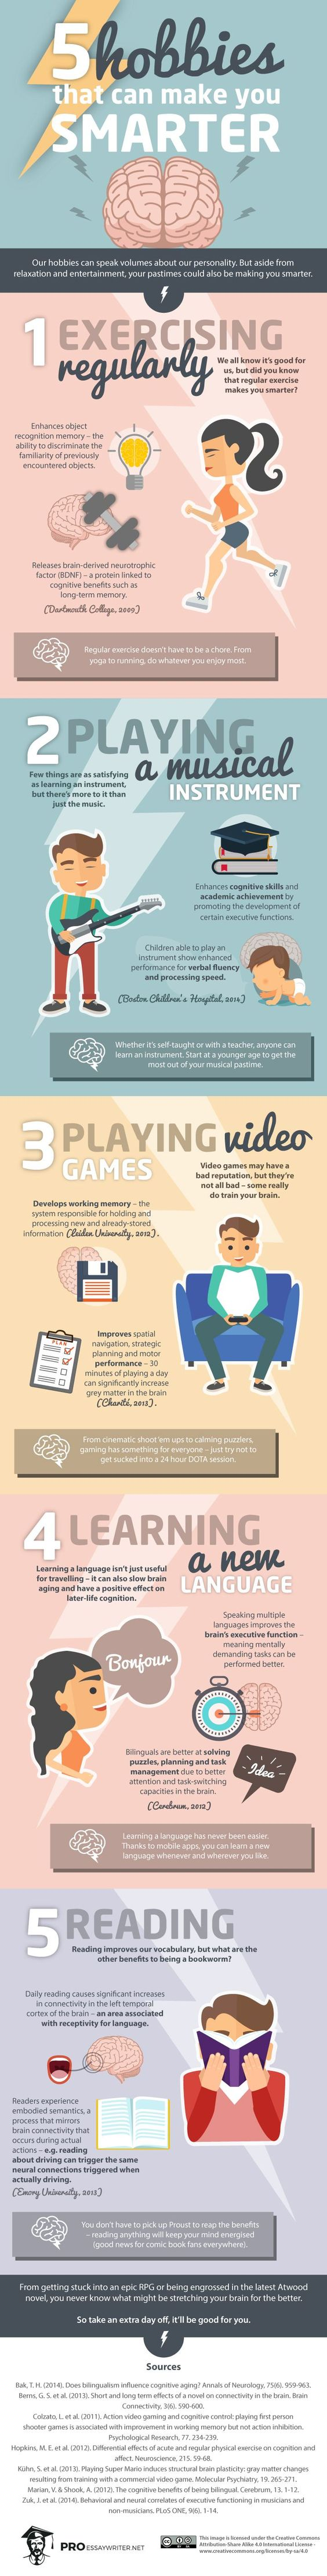 Top Hobbies Infographic